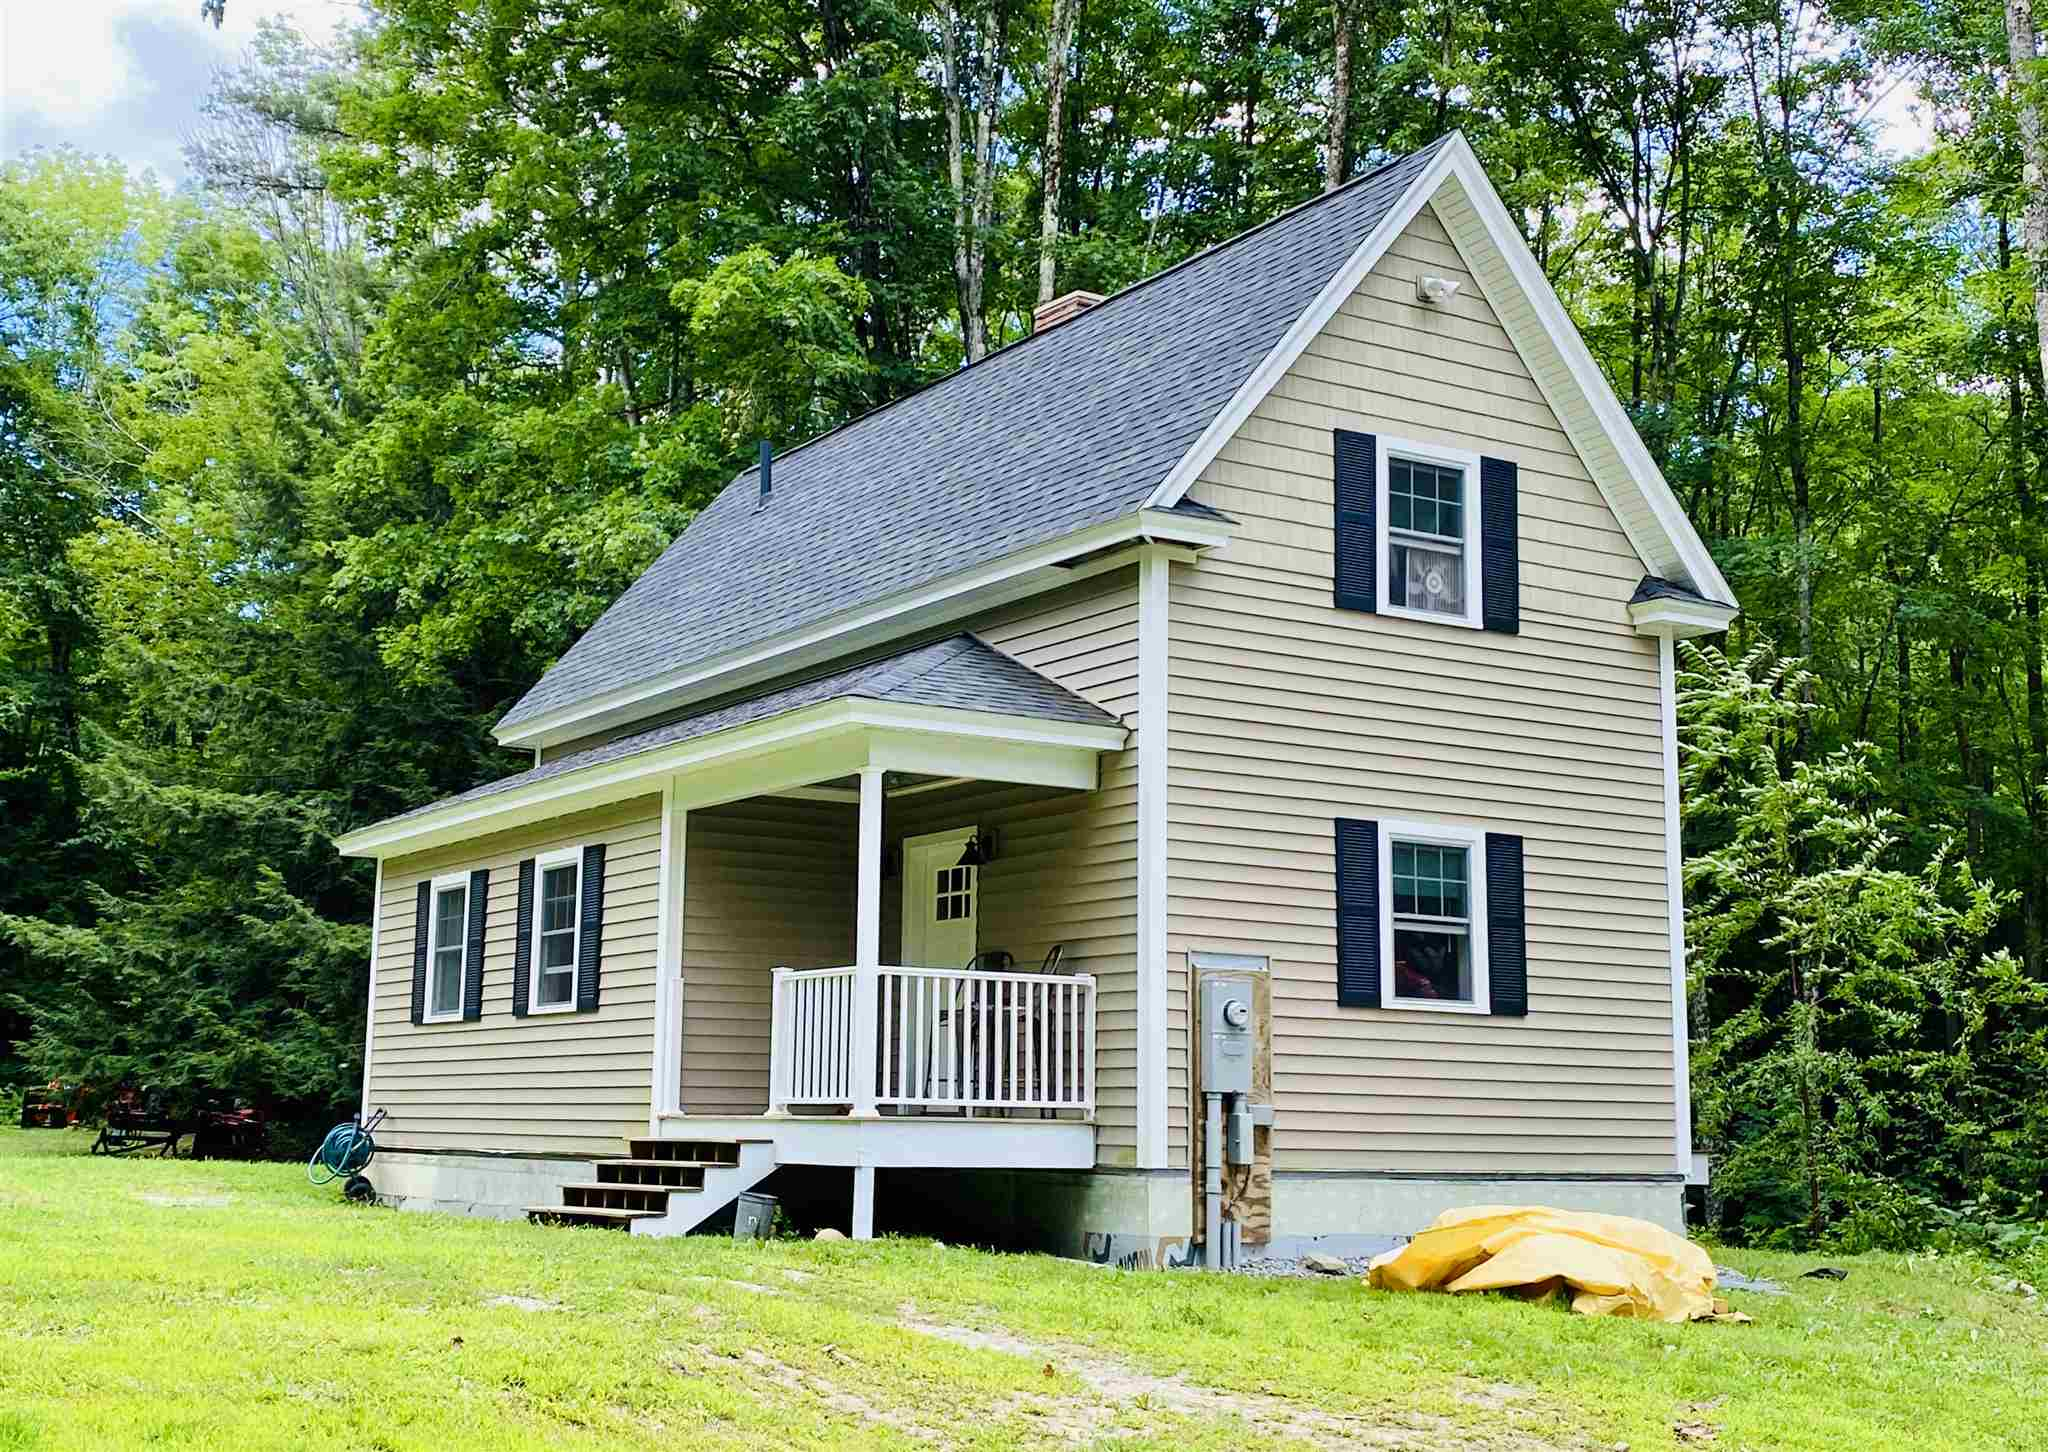 UNITY NH Homes for sale